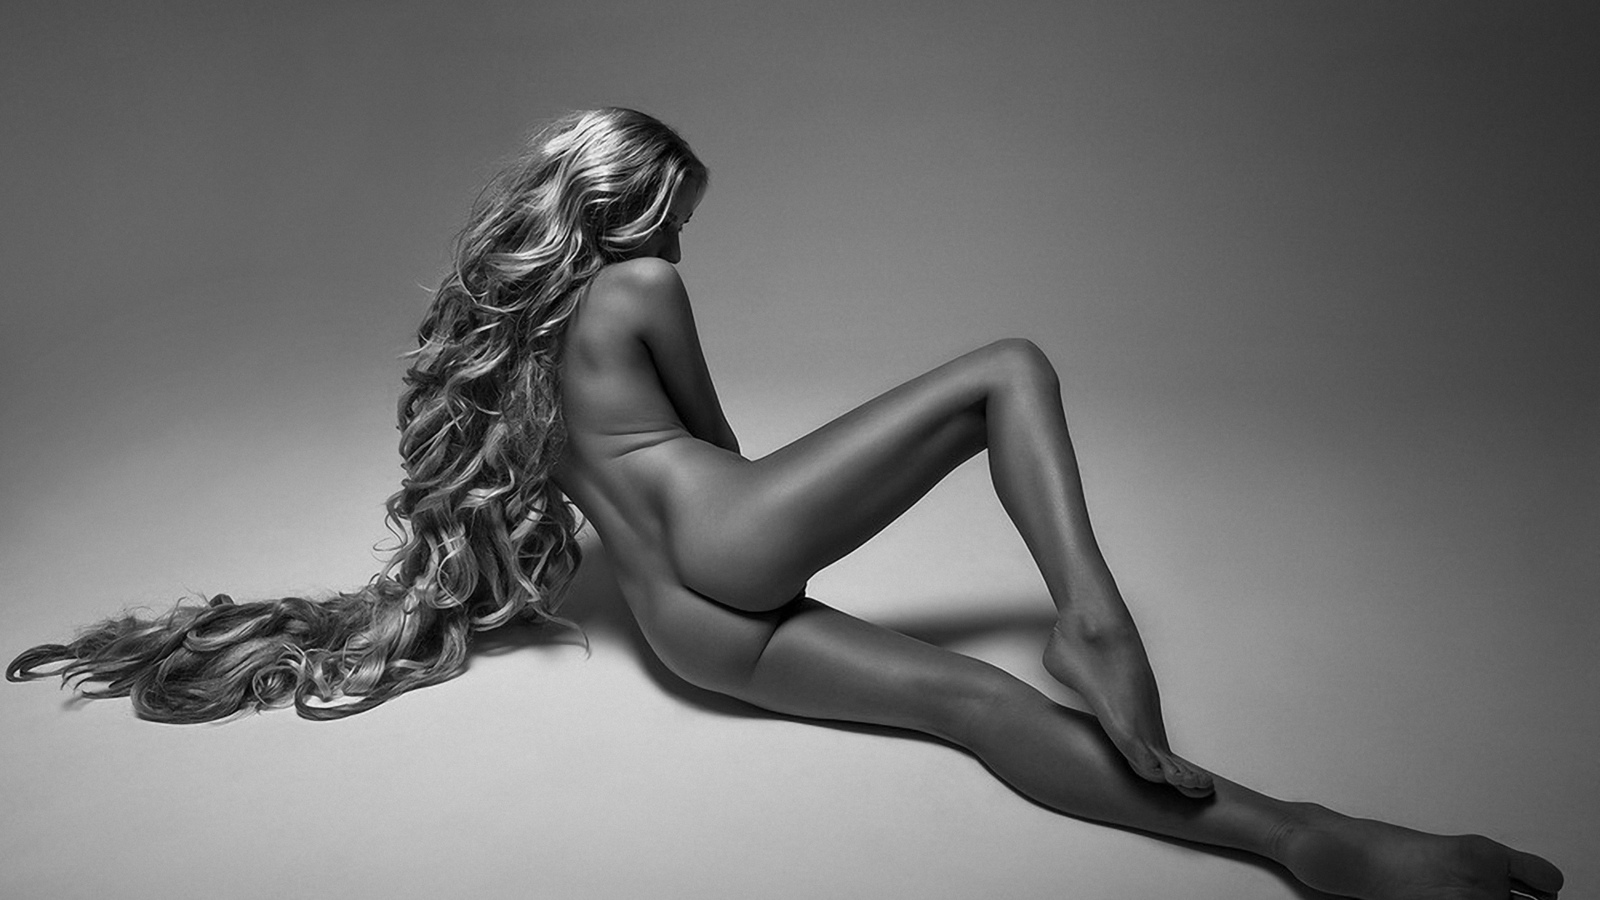 Nudes Black and White Photography -